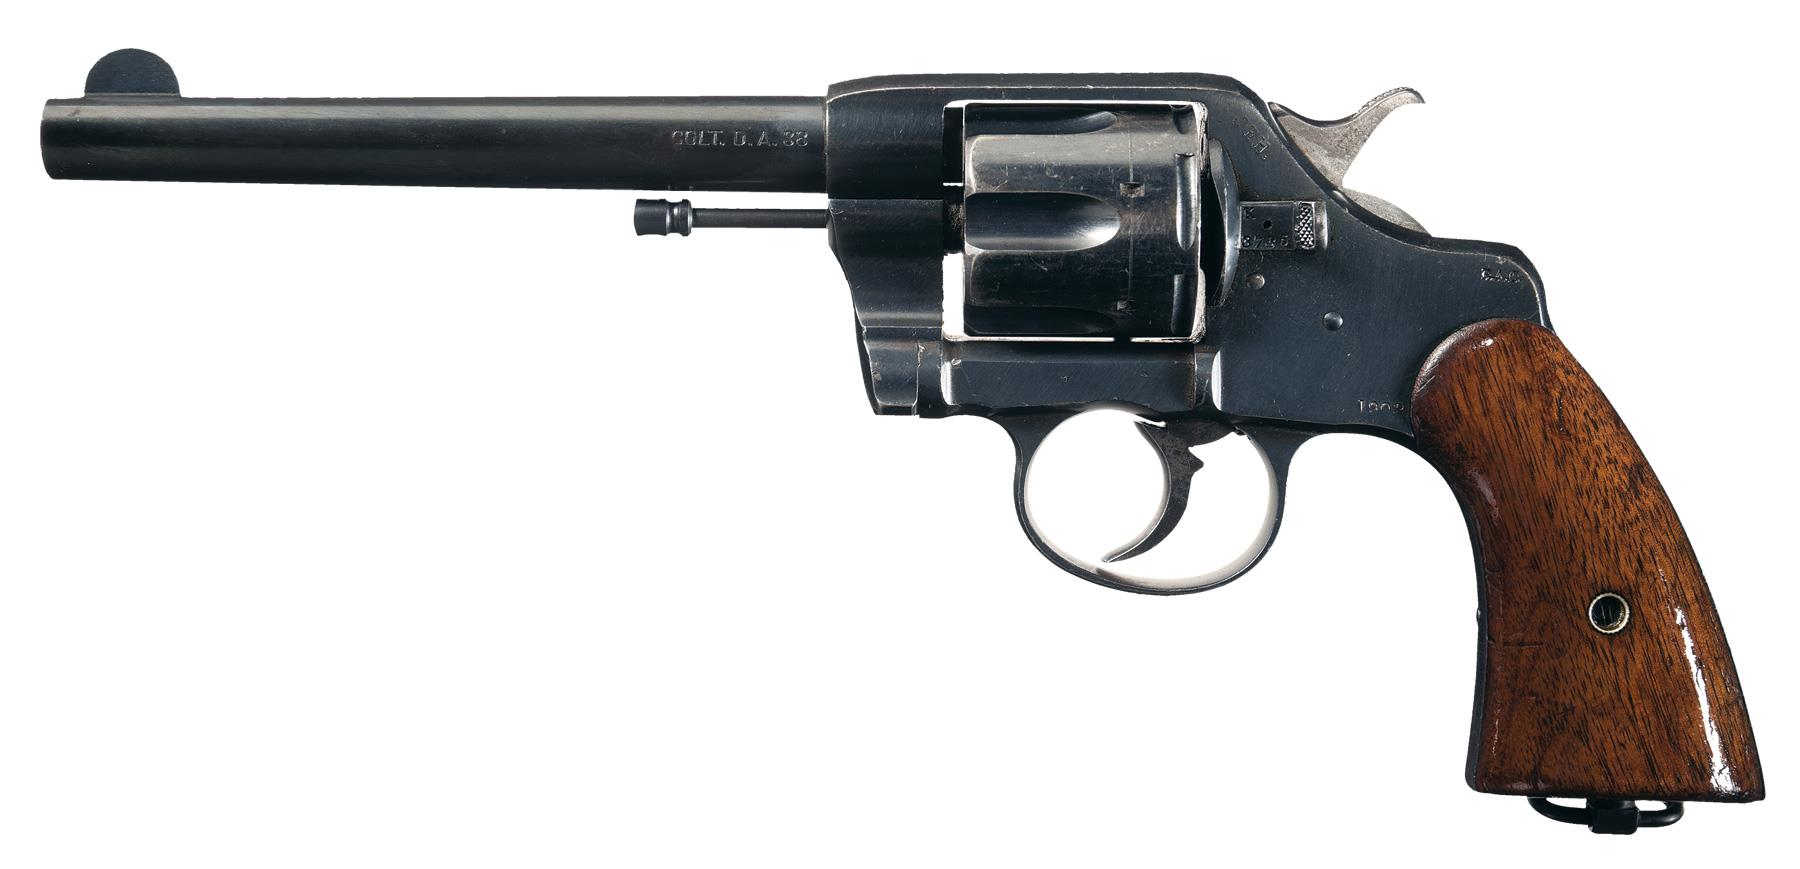 u s colt model 1903 army double action revolver